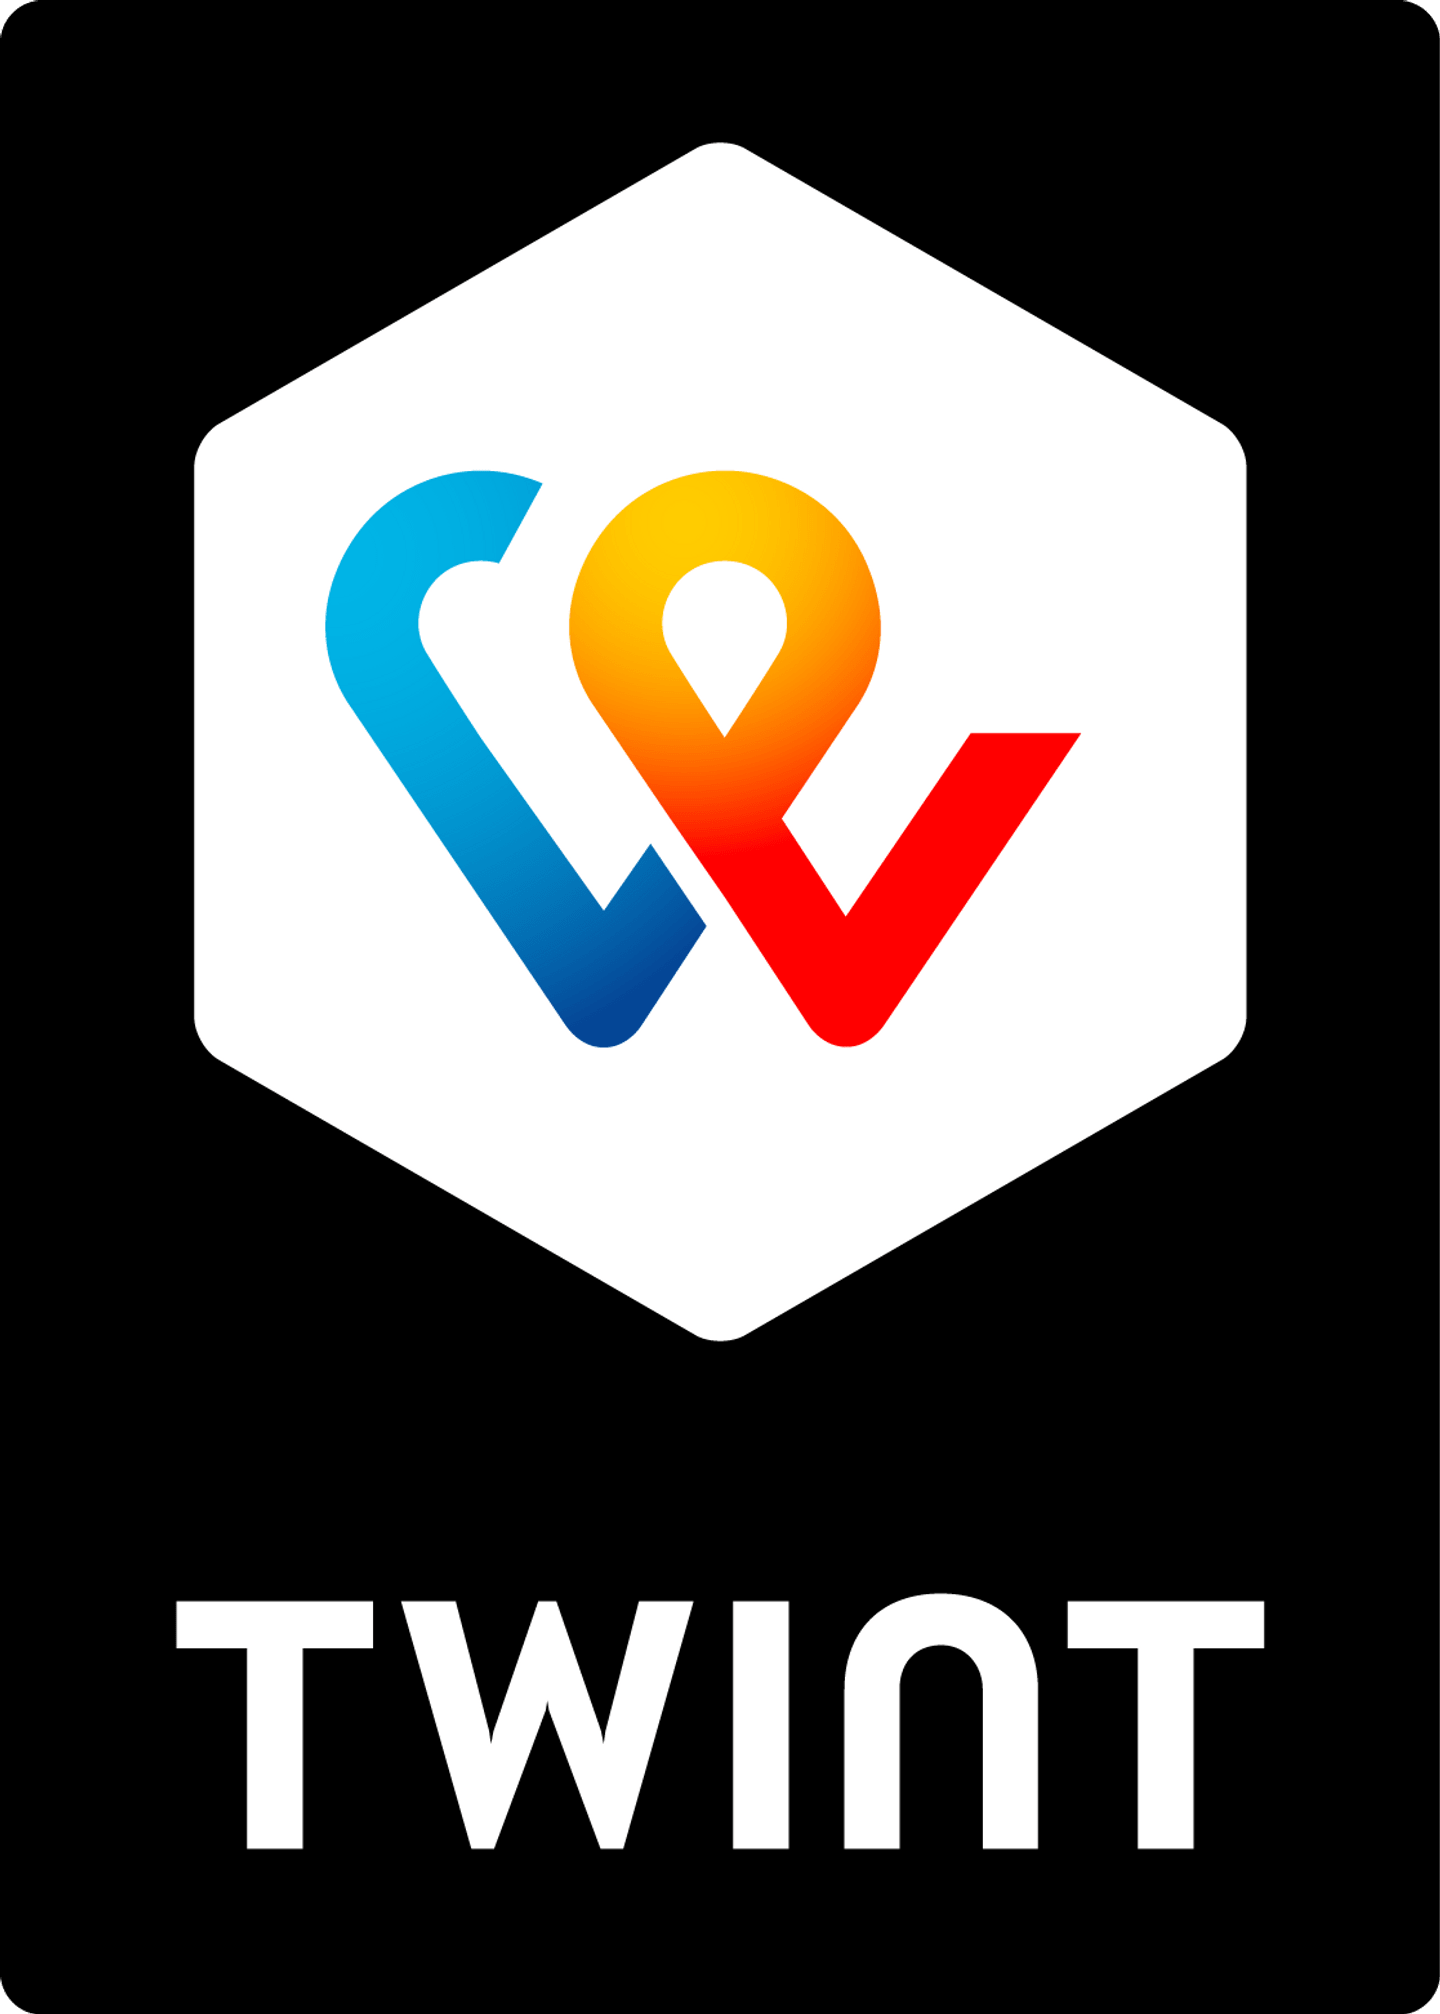 Twint png